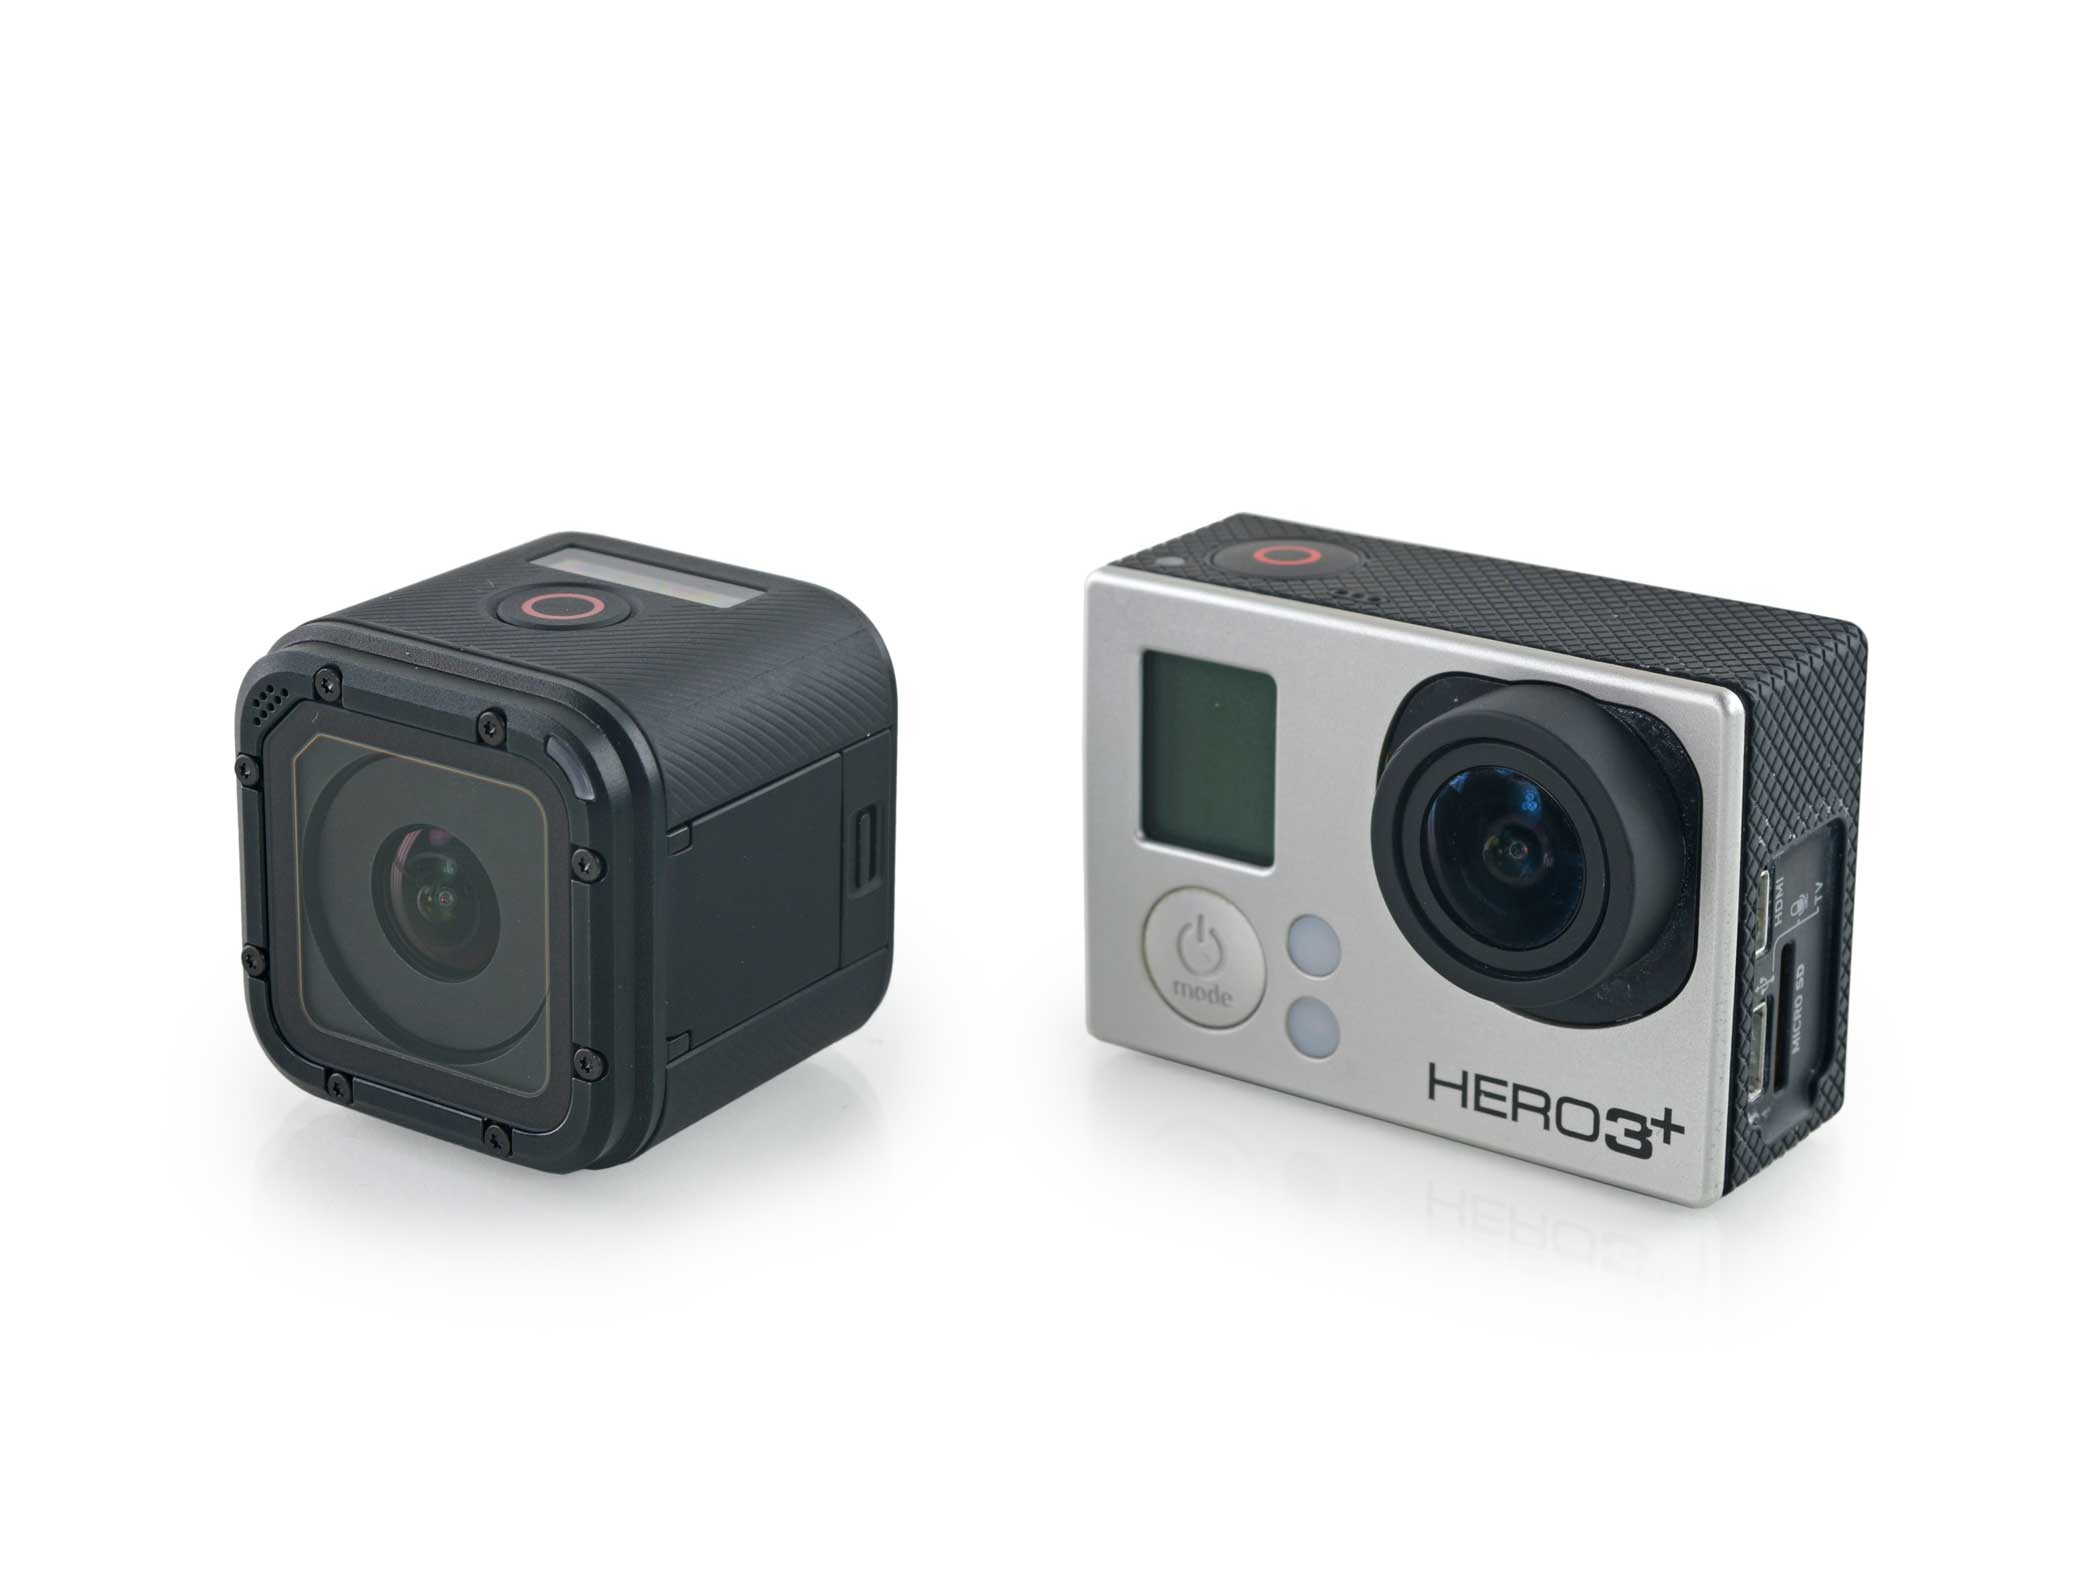 The GoPro HERO4 Session (left) compared to a GoPro HERO3 (right).